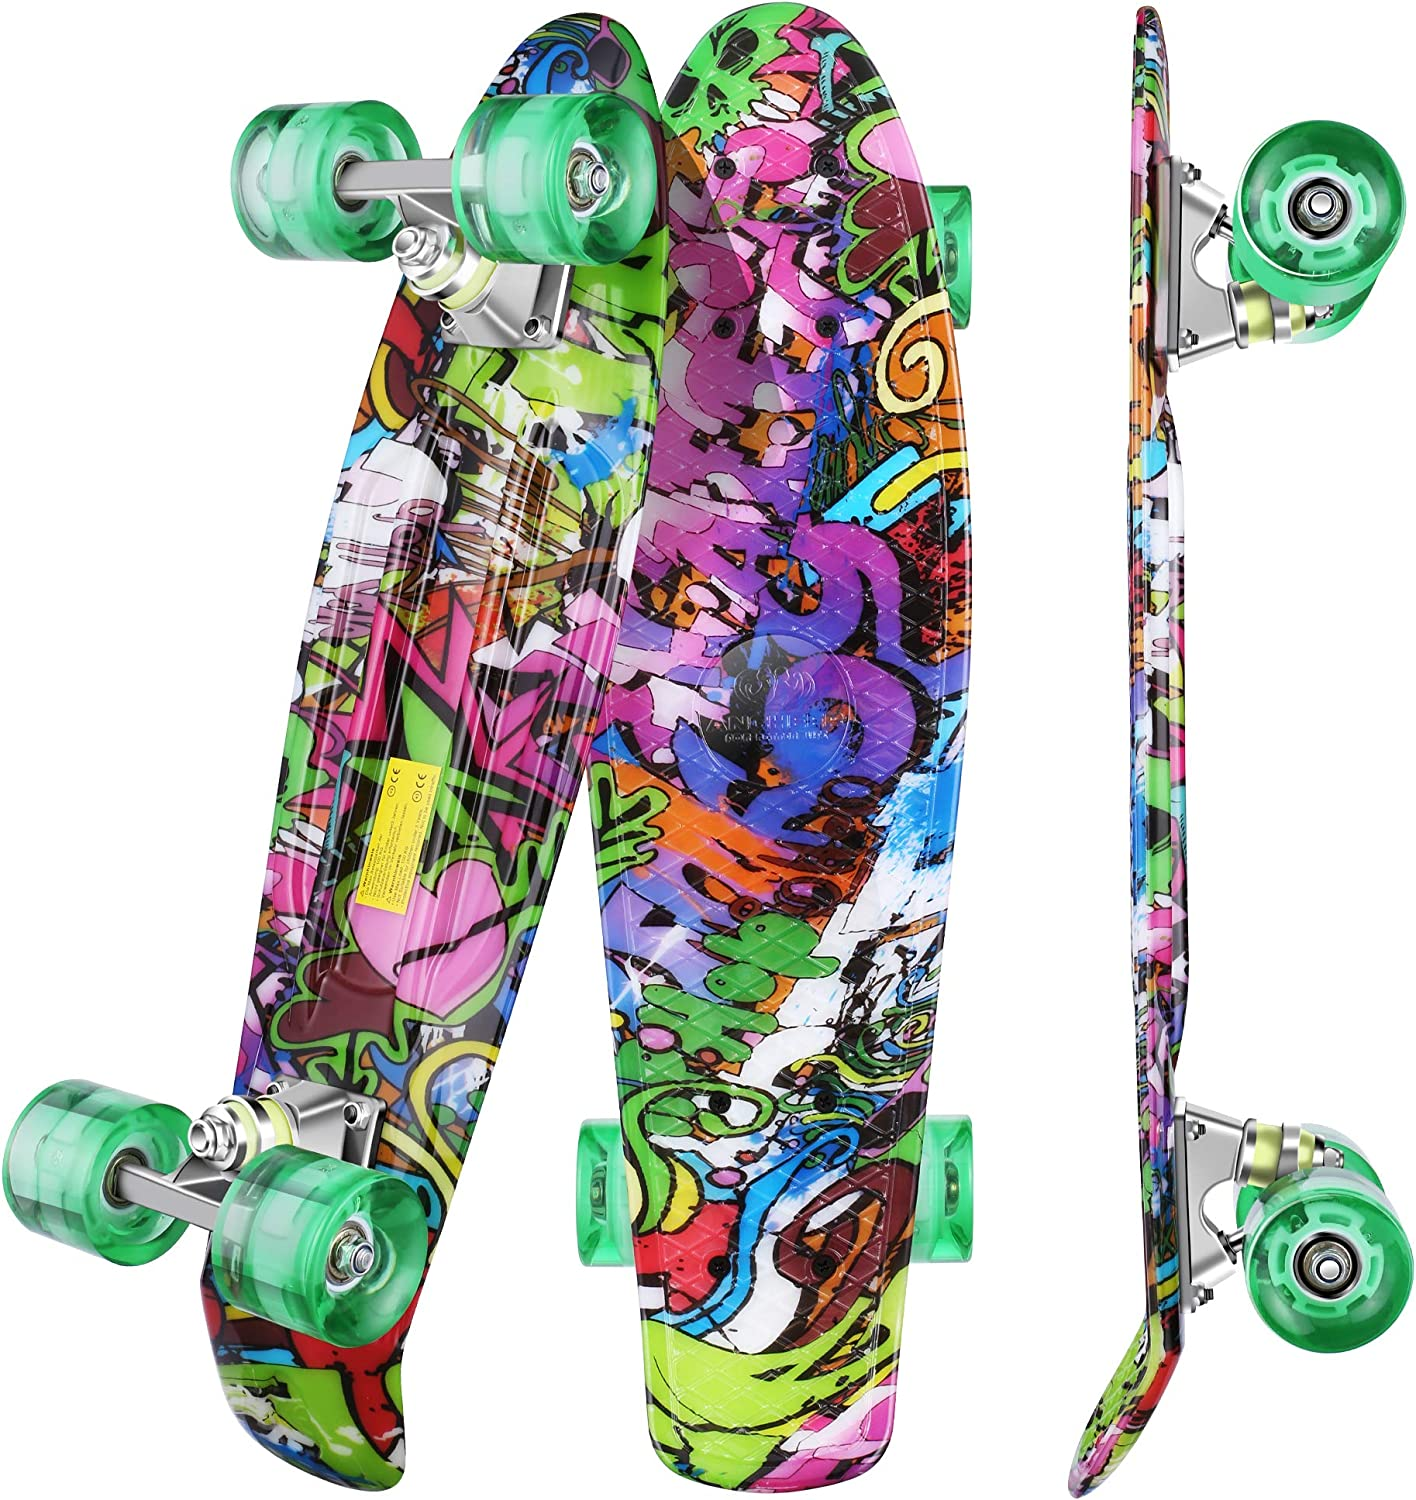 WeSkate Complete Mini Cruiser Skateboard 22 inch 2 inch Retro / UK